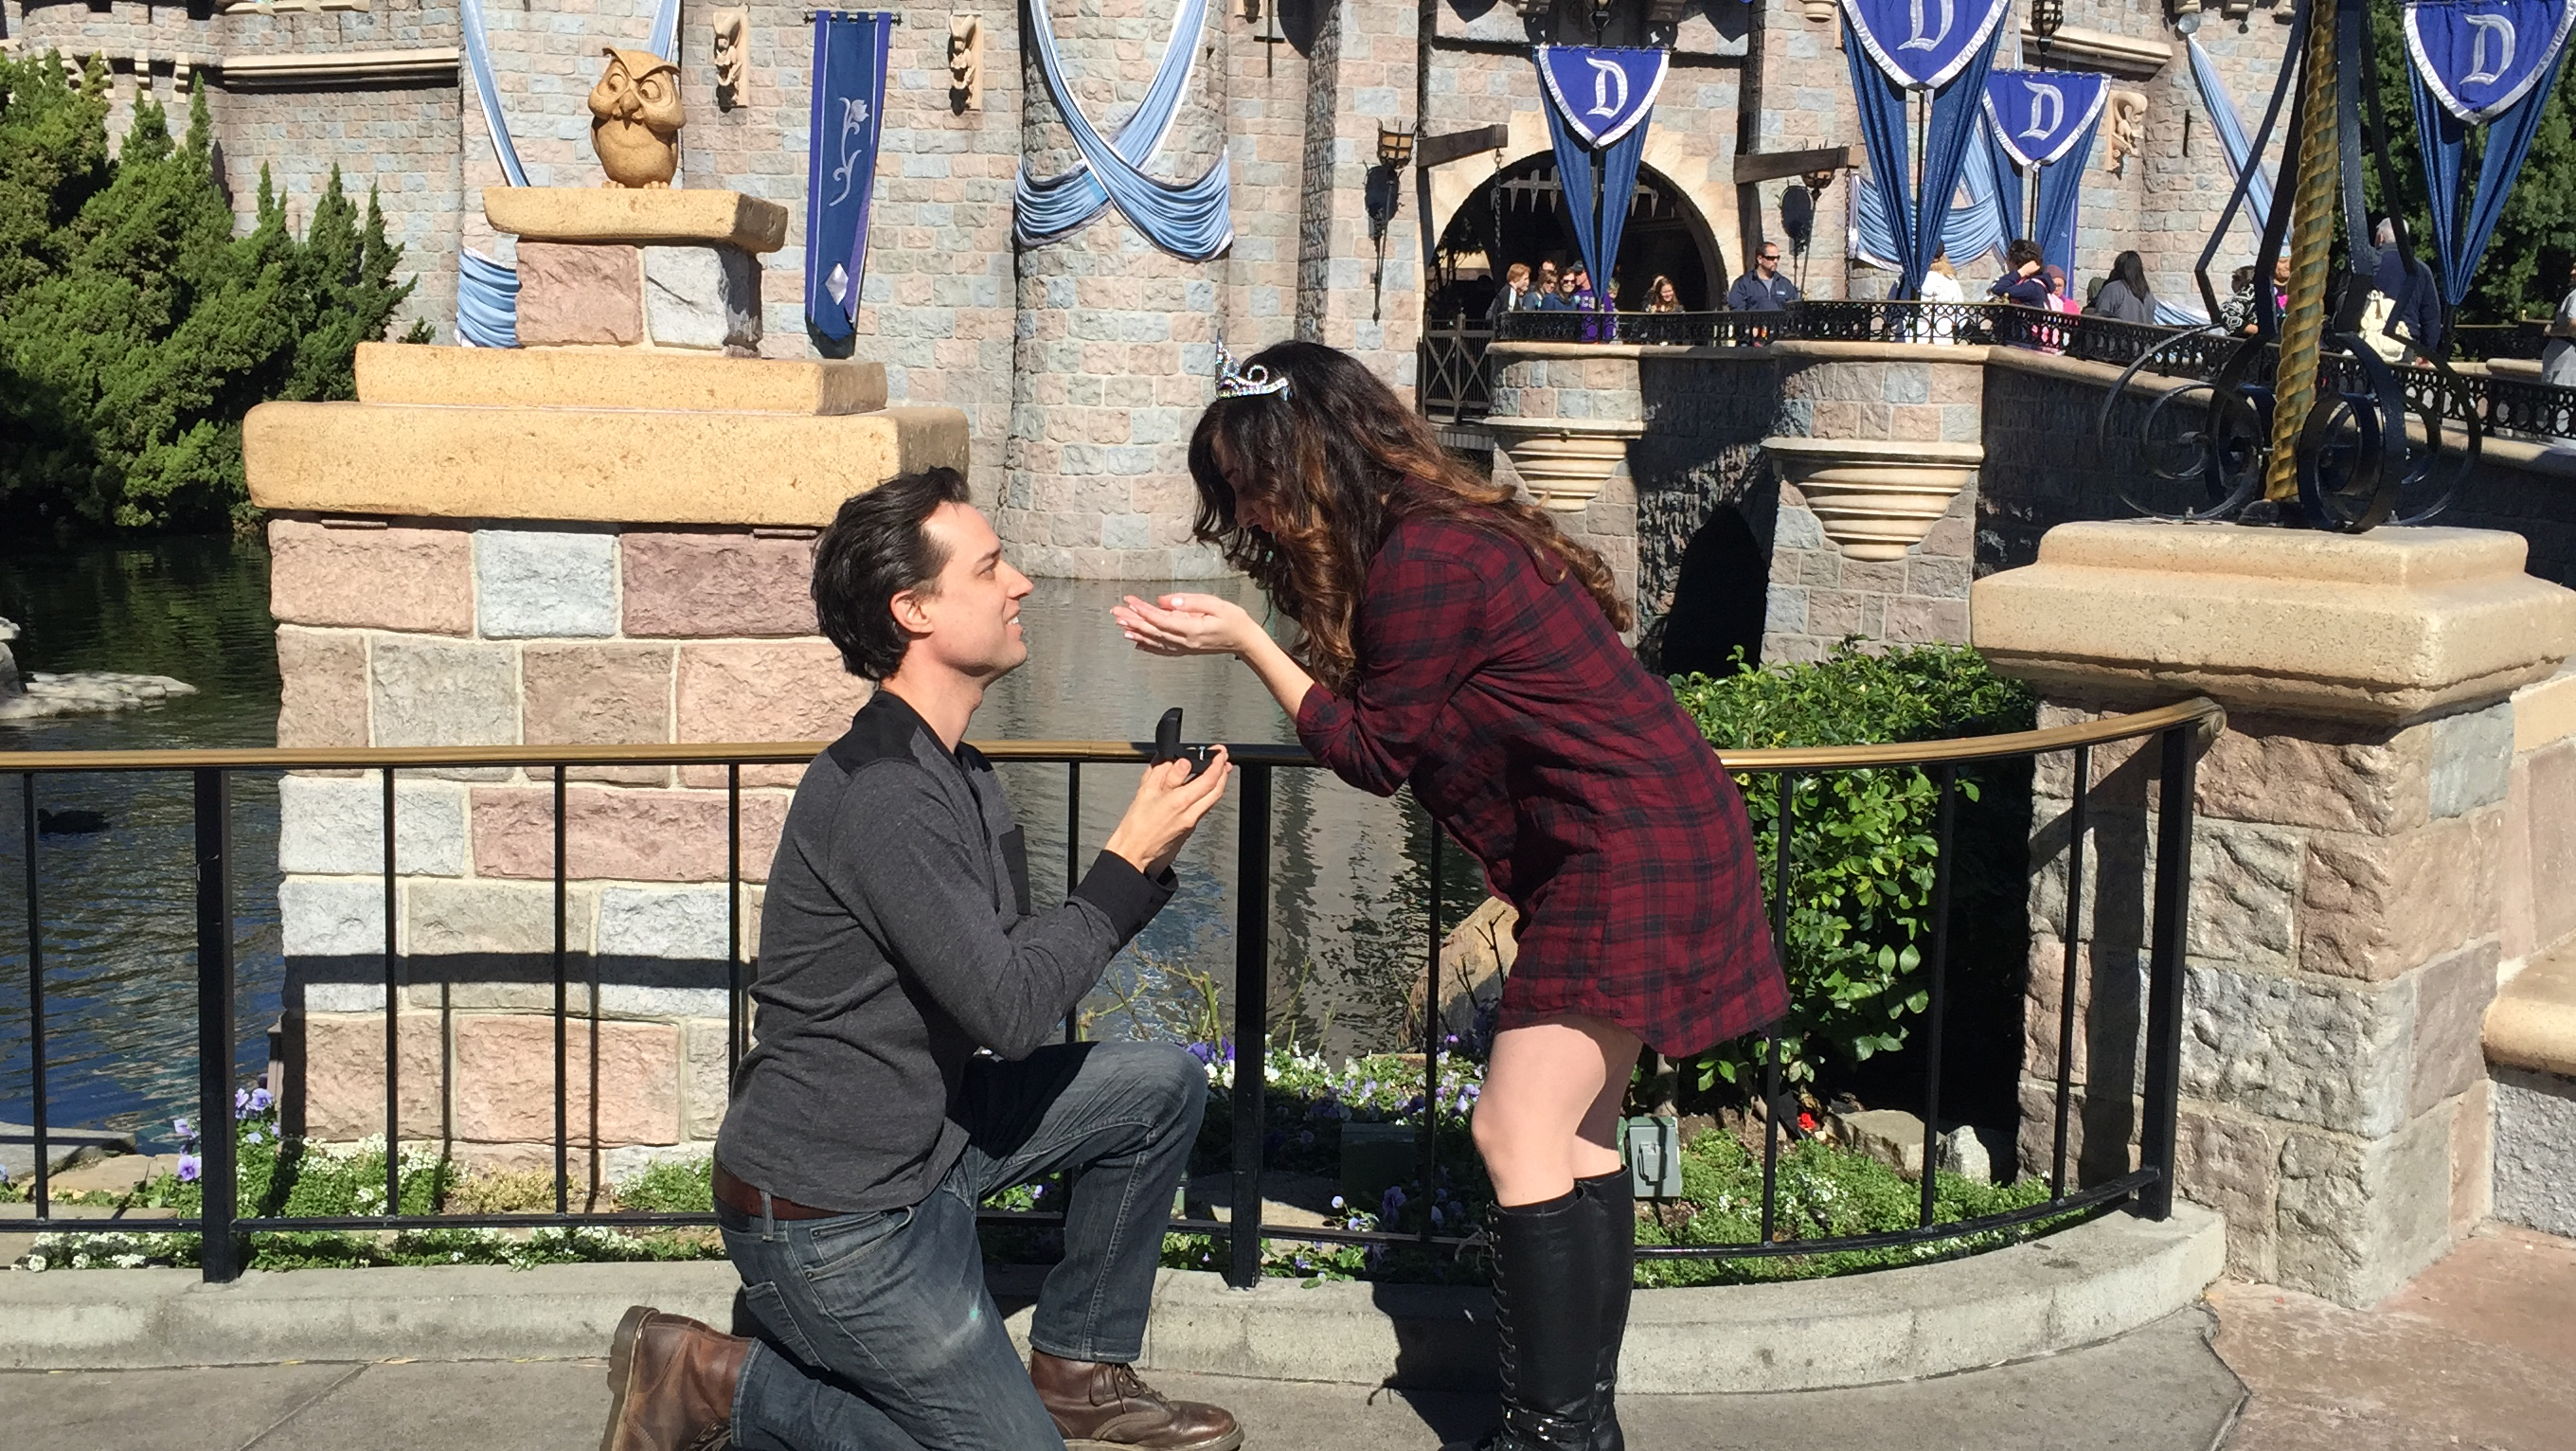 Image 1 of Drew and Andrea's Princess and the Frog Proposal